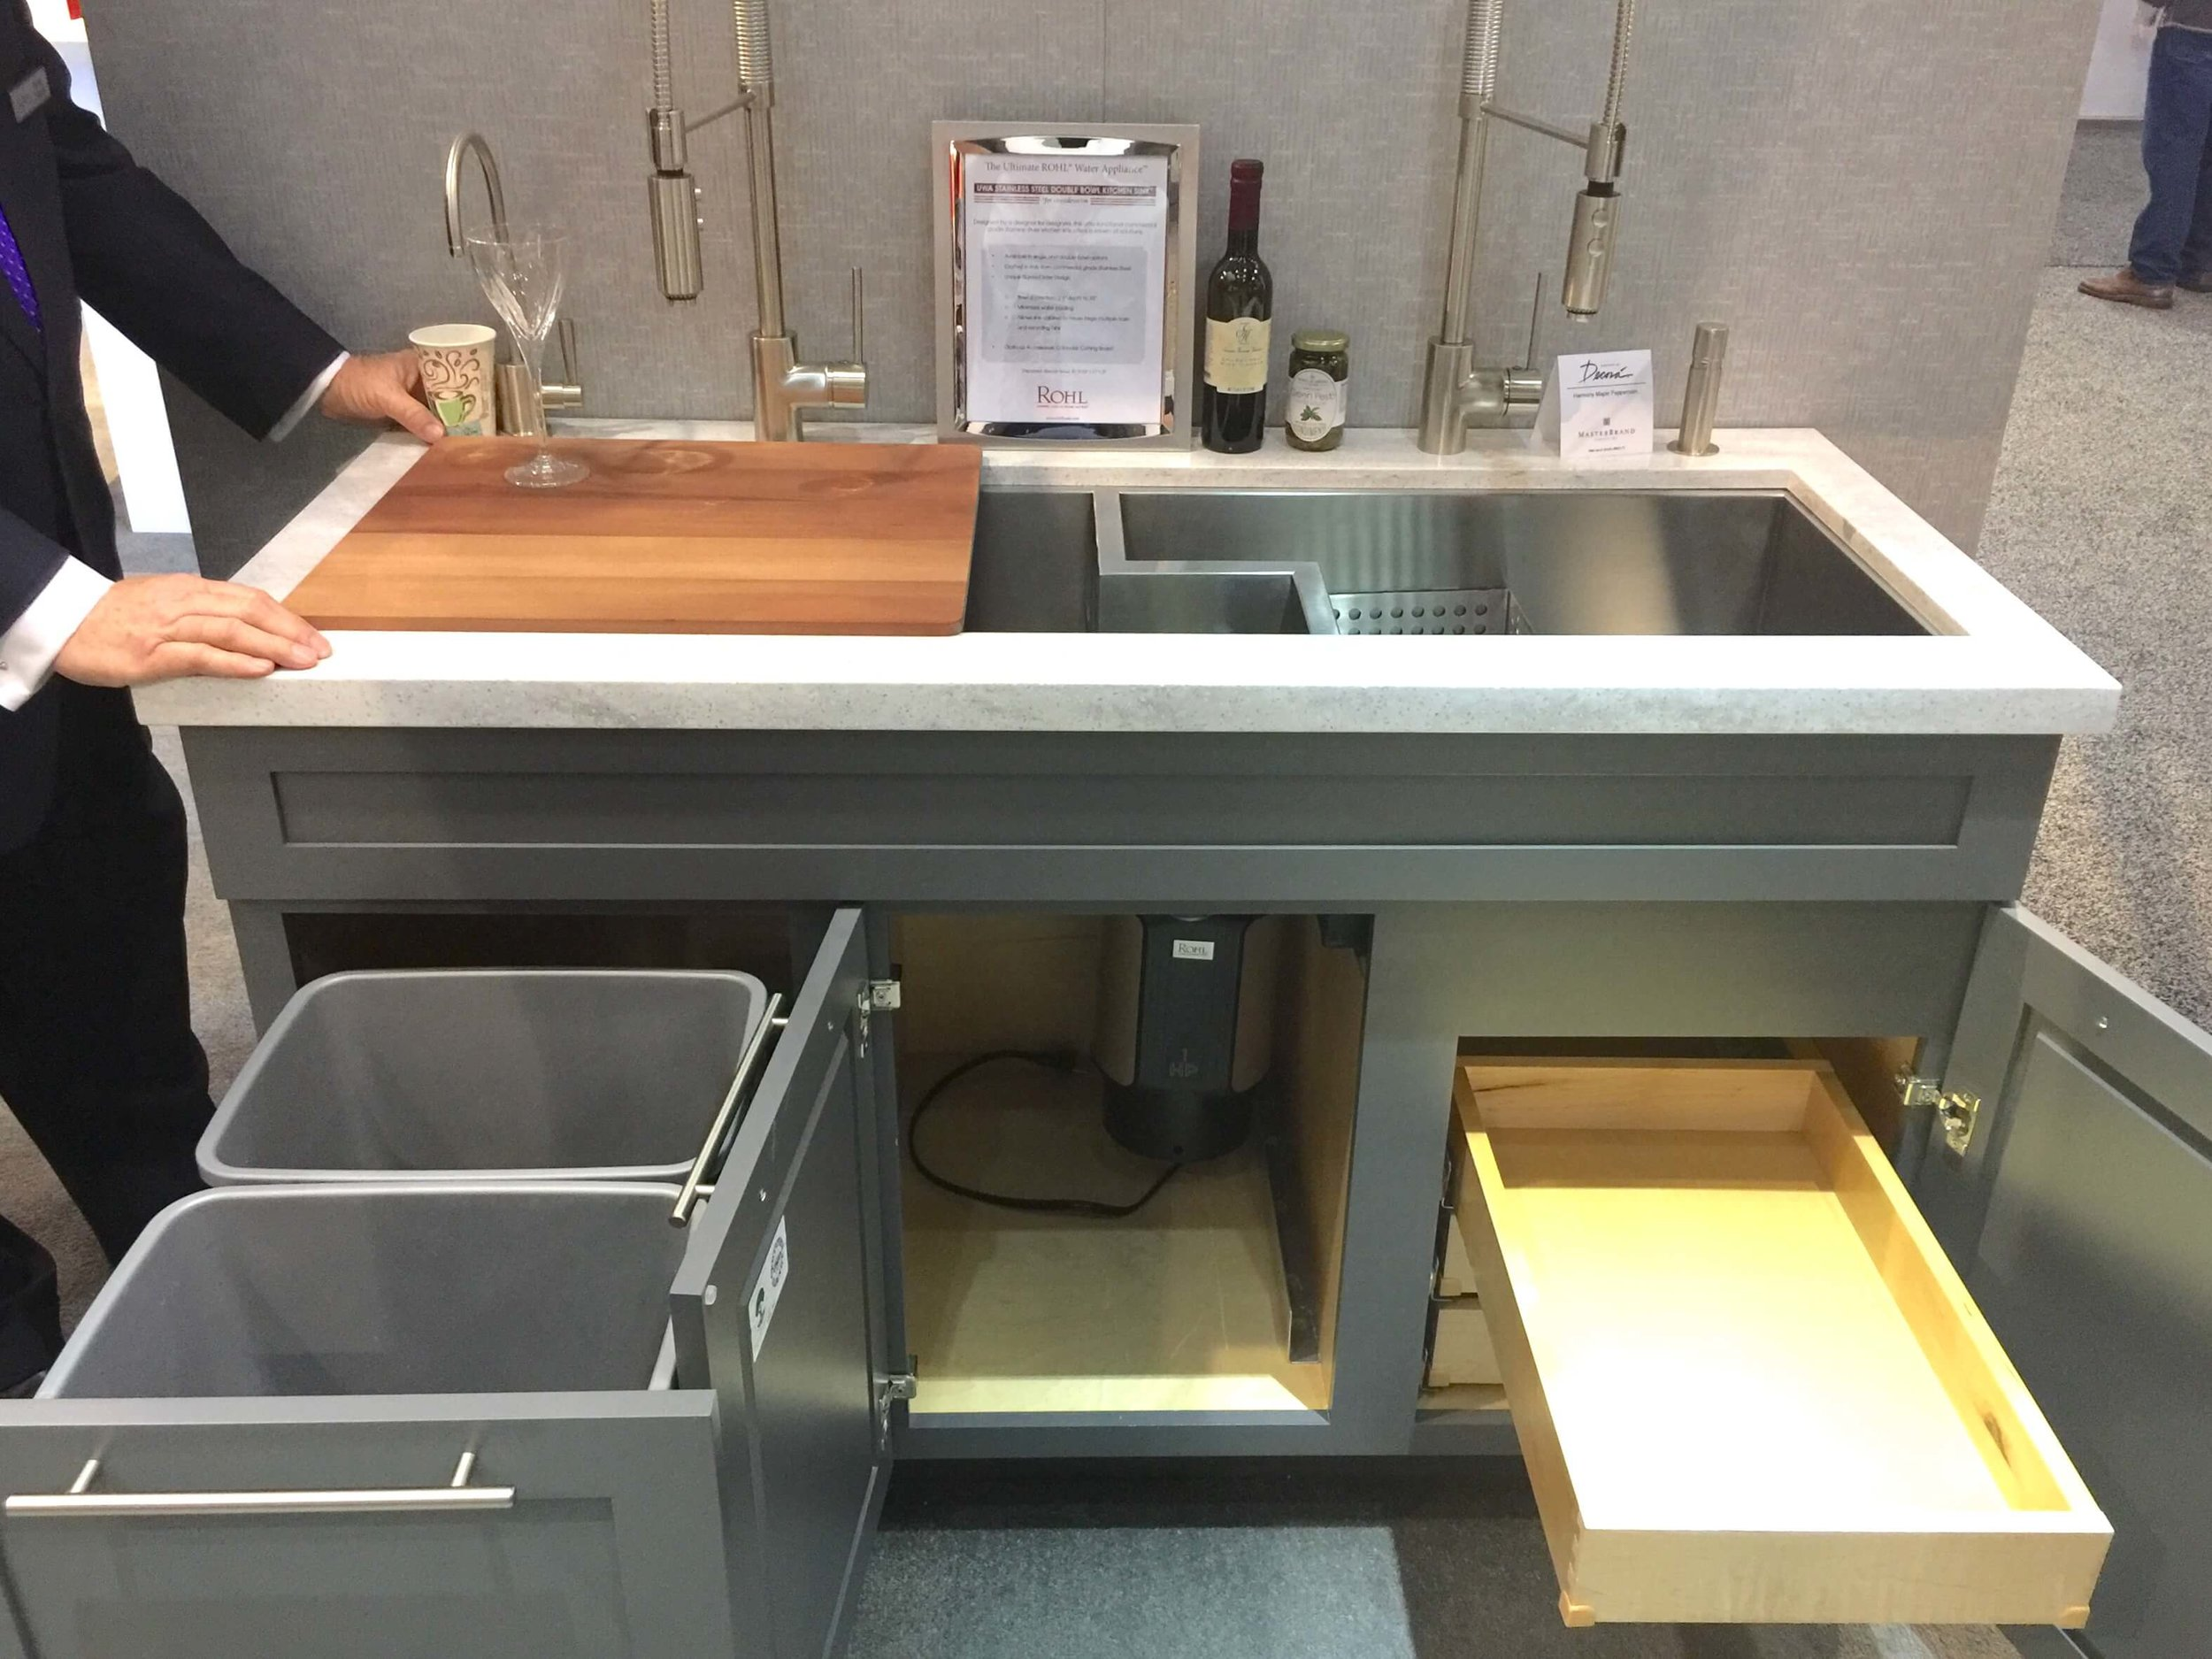 "Rohl extra wide prototype sink with drains centered in 18"" wide center cabinet and maximum storage below in adjacent cabinets."